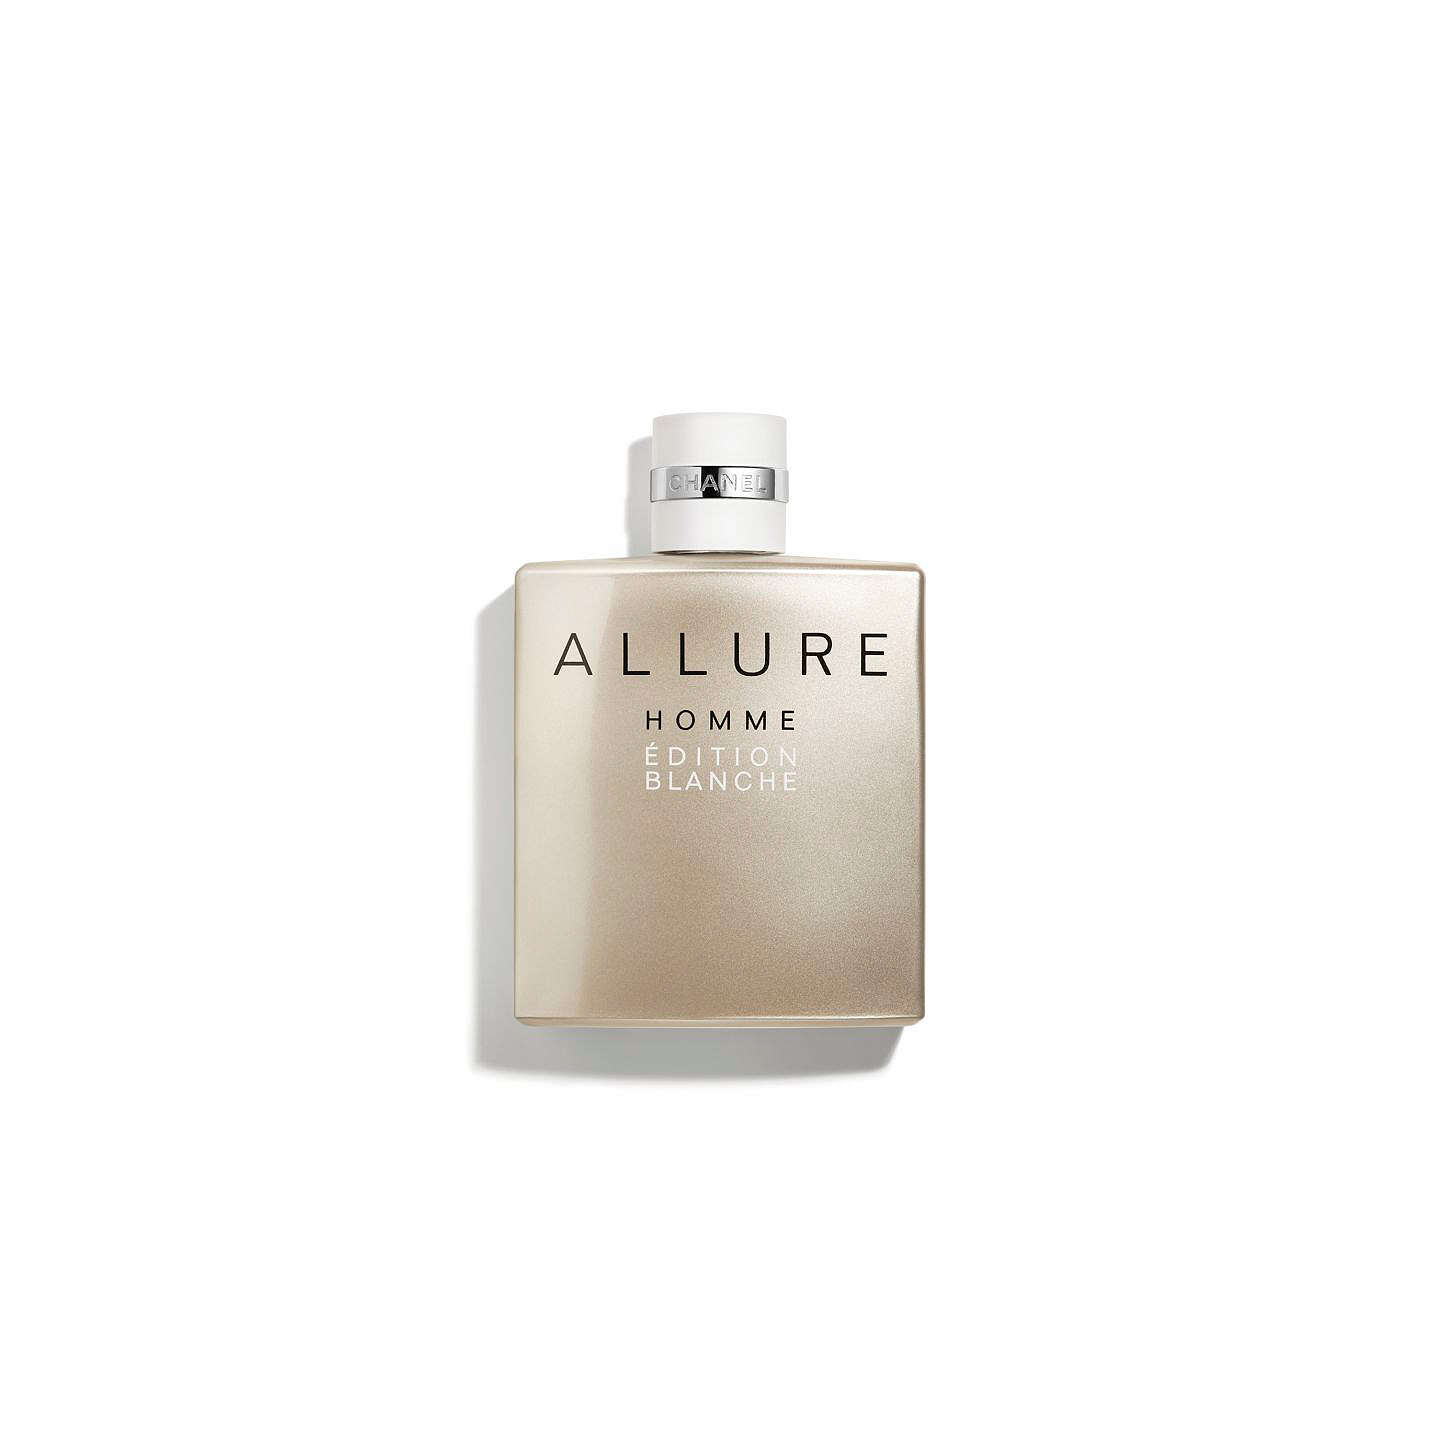 BuyCHANEL ALLURE HOMME ÉDITION BLANCHE Eau de Toilette Concentrée Spray, 50ml Online at johnlewis.com